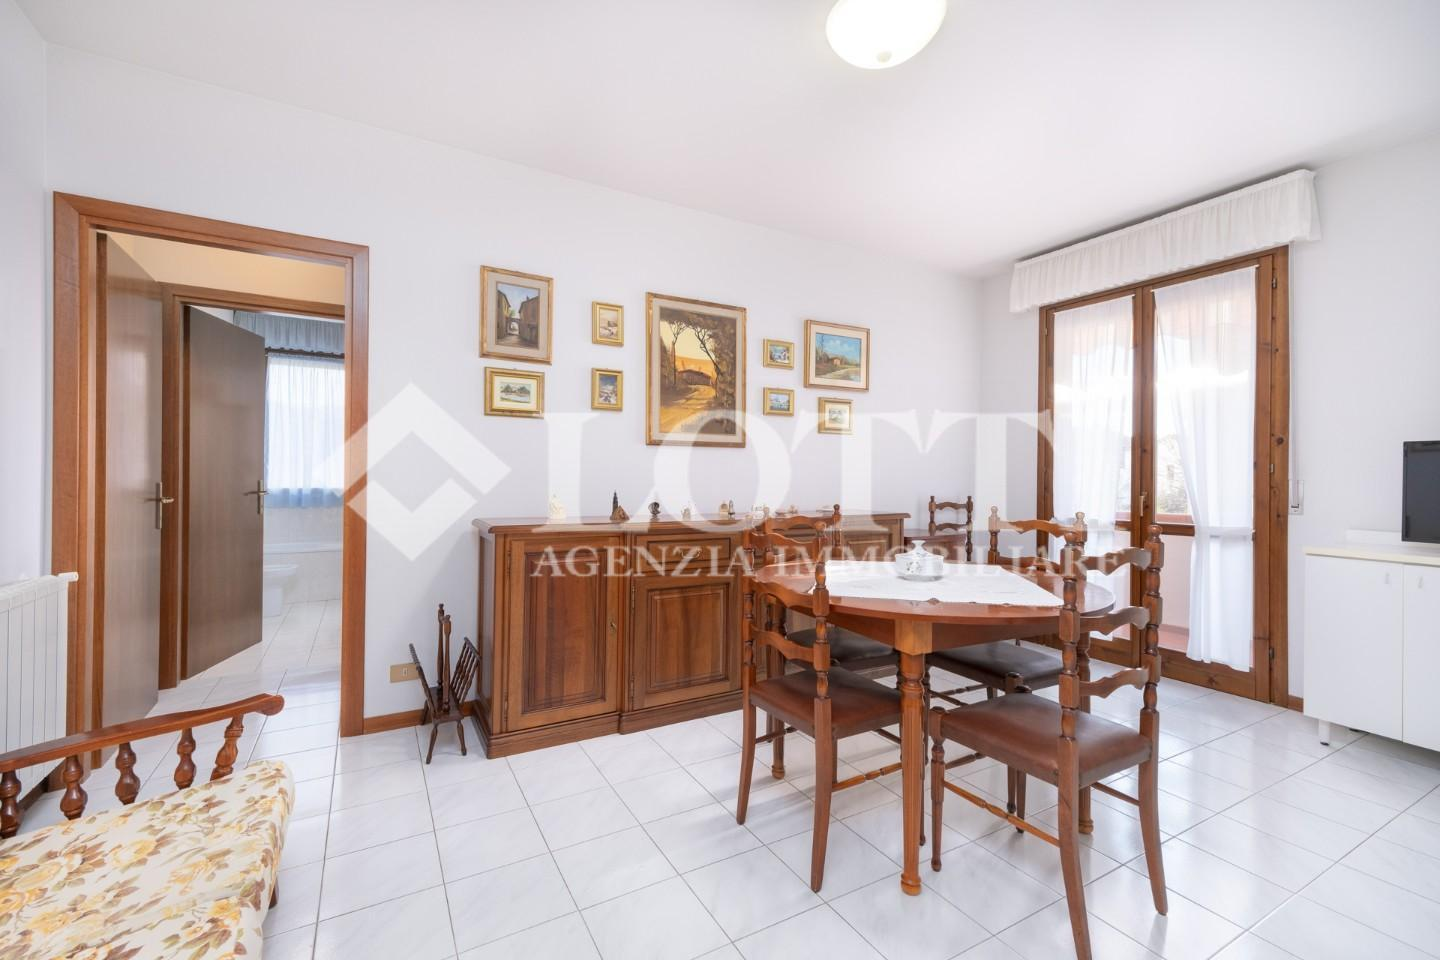 Apartment for sale in Ponticelli, Santa Maria a Monte (PI)